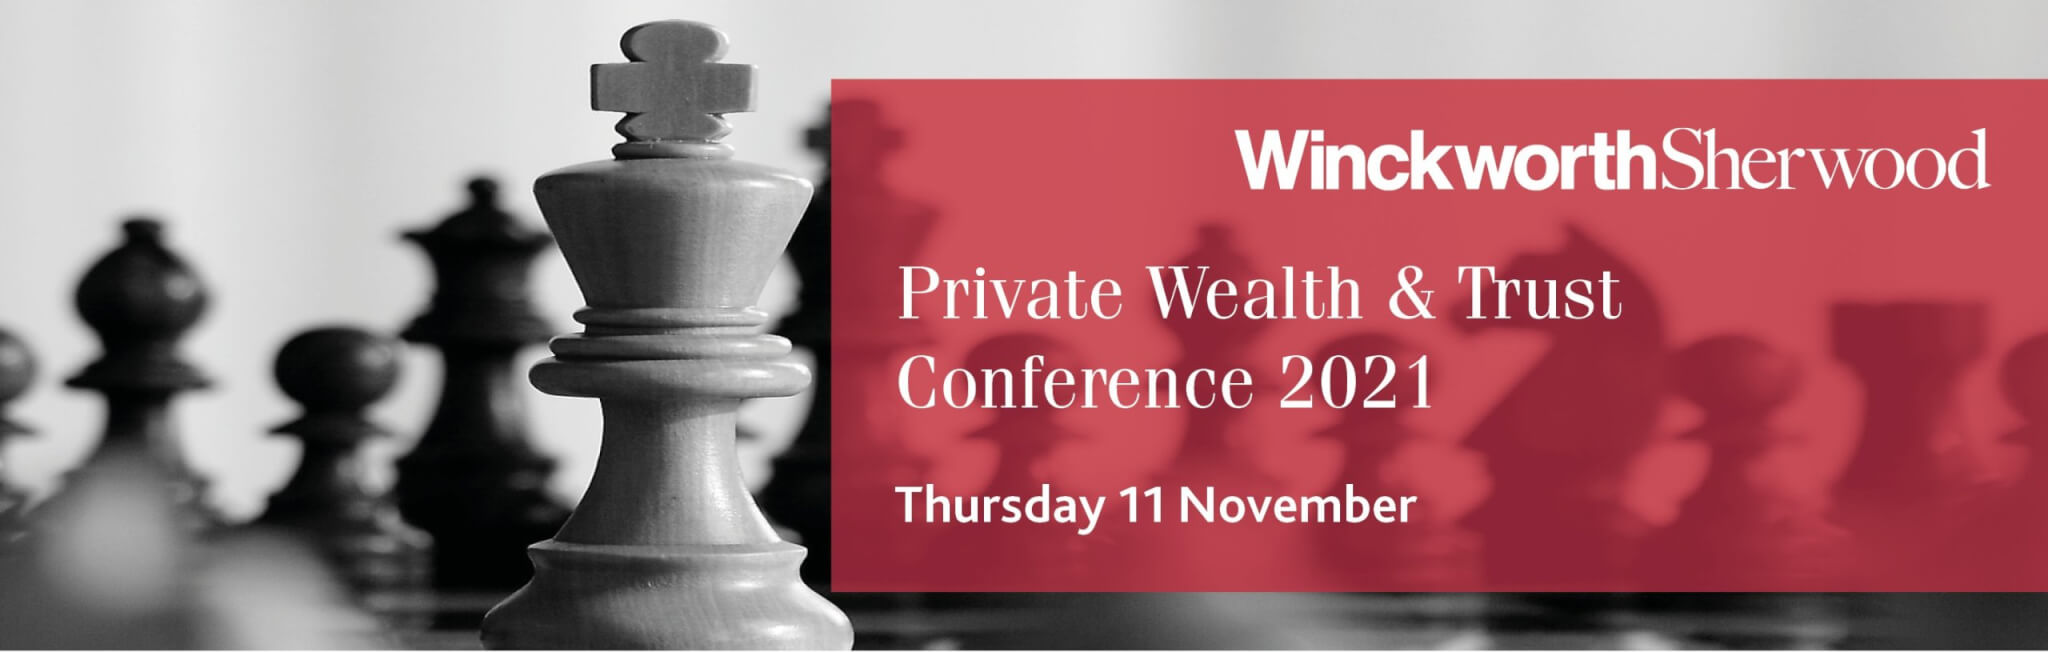 Private Wealth & Trust Conference 2021